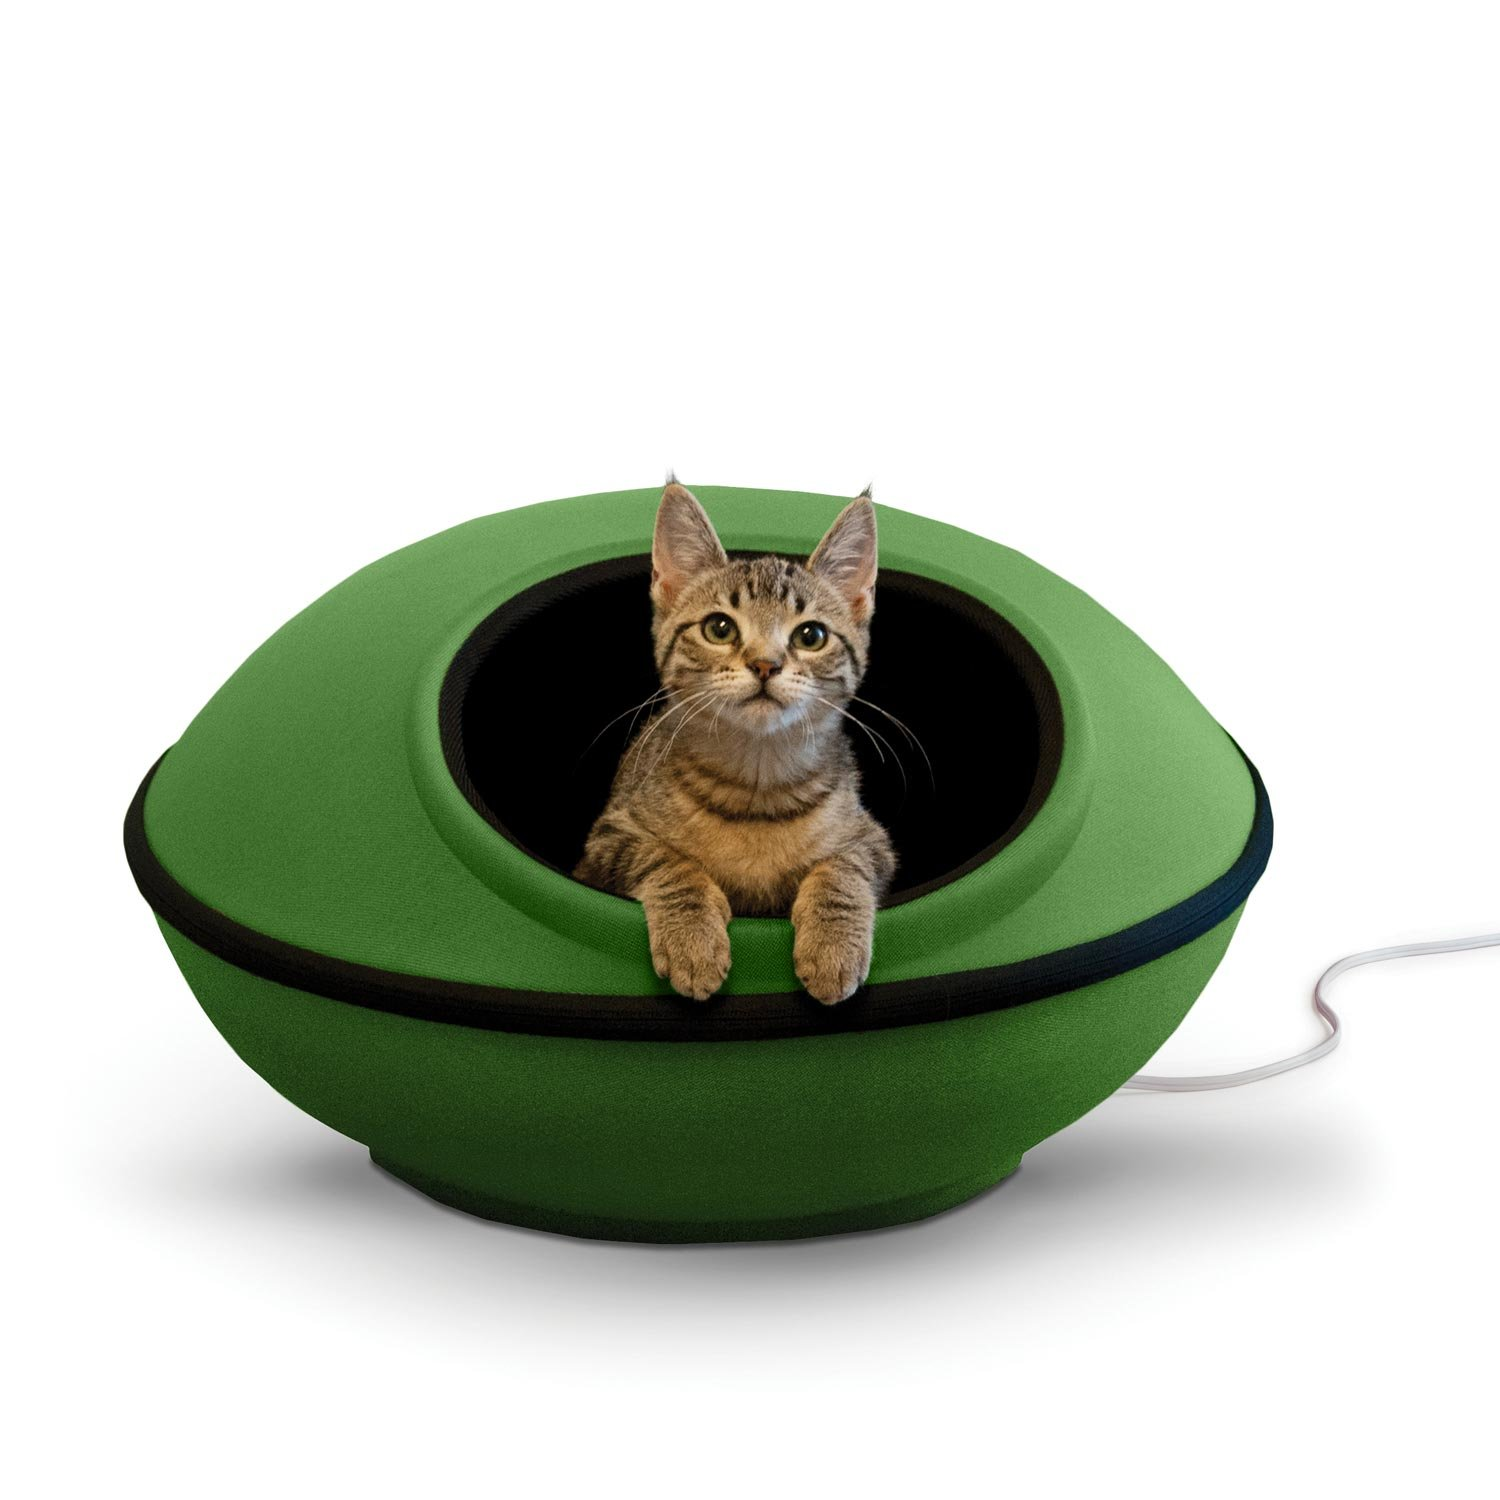 K&H Pet Products Thermo-Mod Dream Pod Heated Pet Bed Green/Black 22'' 4W